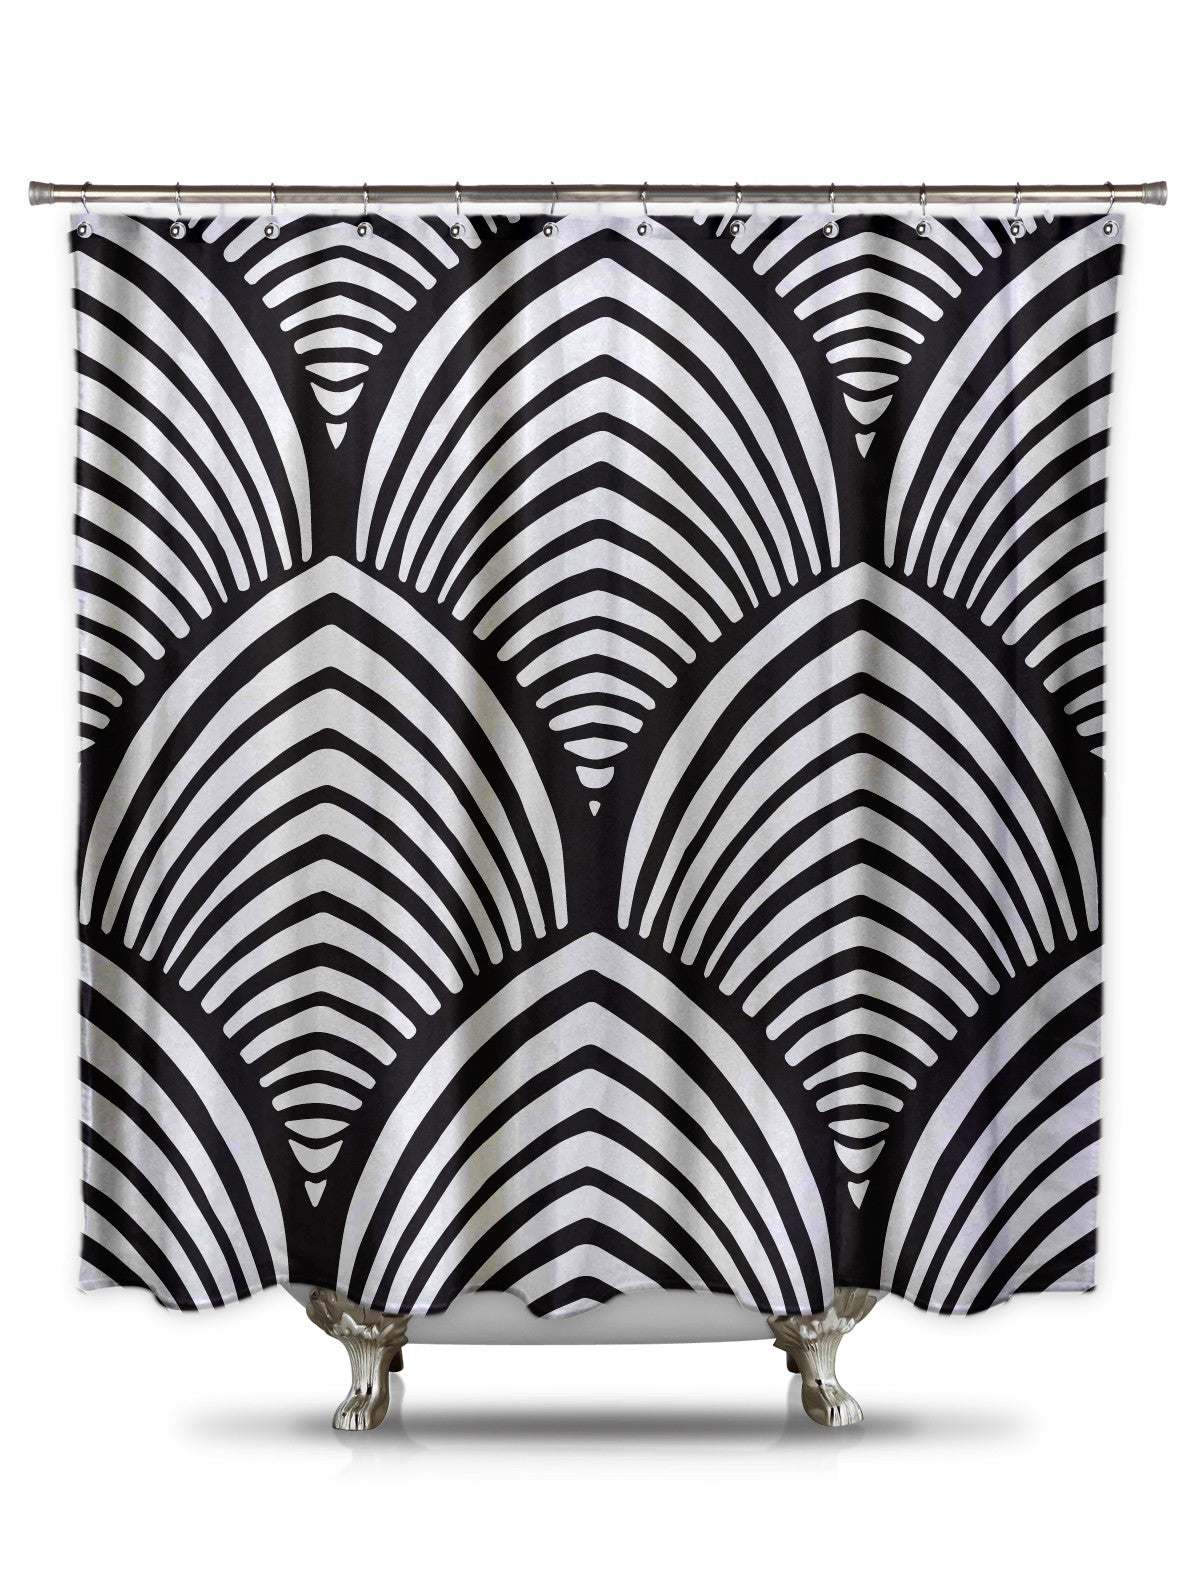 Black and White Shell Pattern Shower Curtain-Adult Coloring Book Series